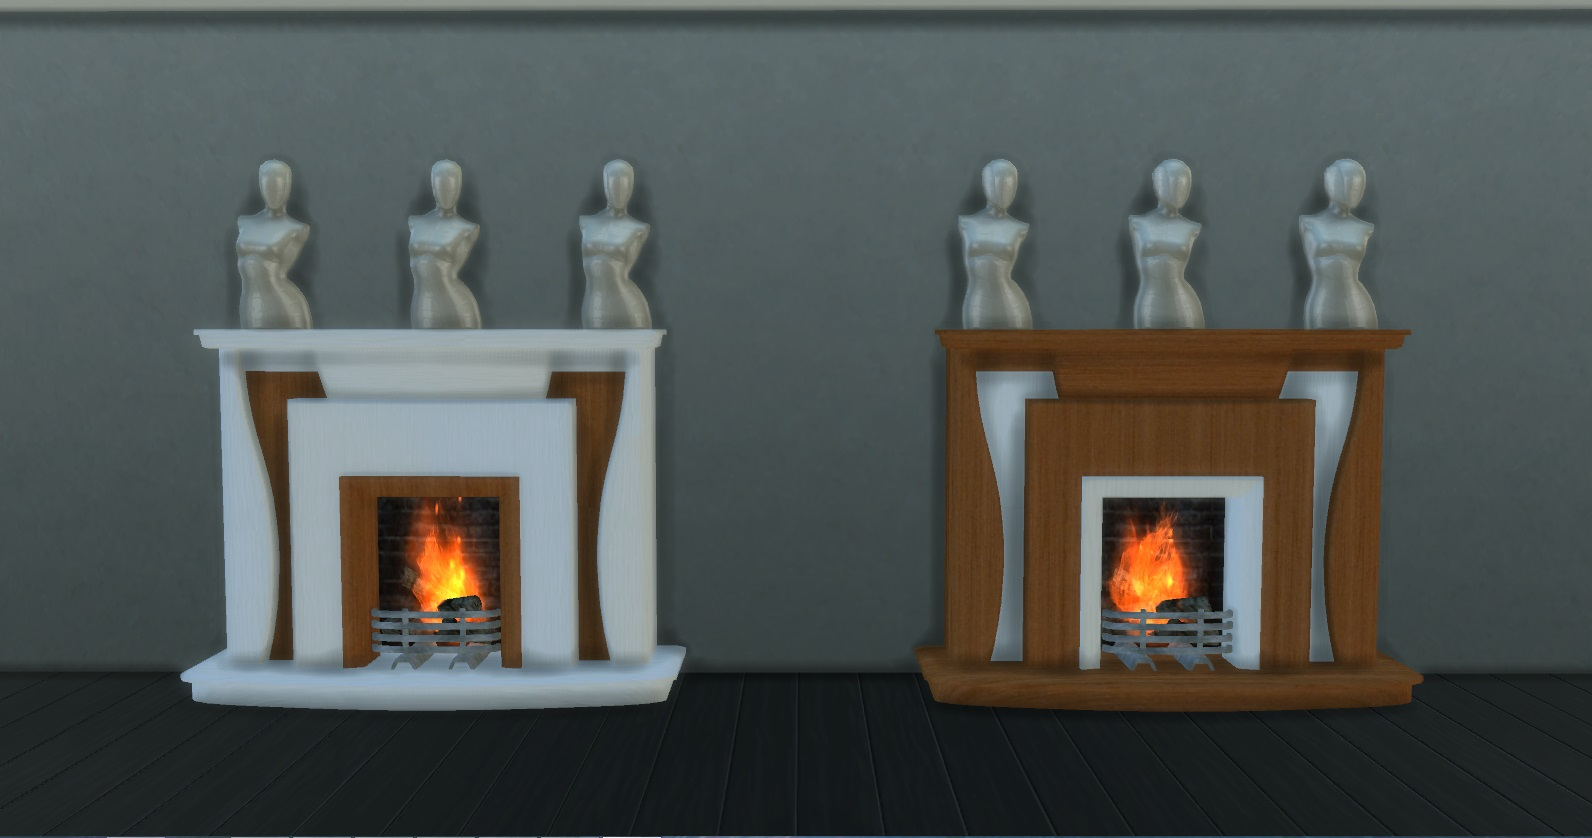 How To Change Fireplace Color Sims 3 – thundergroupuk co